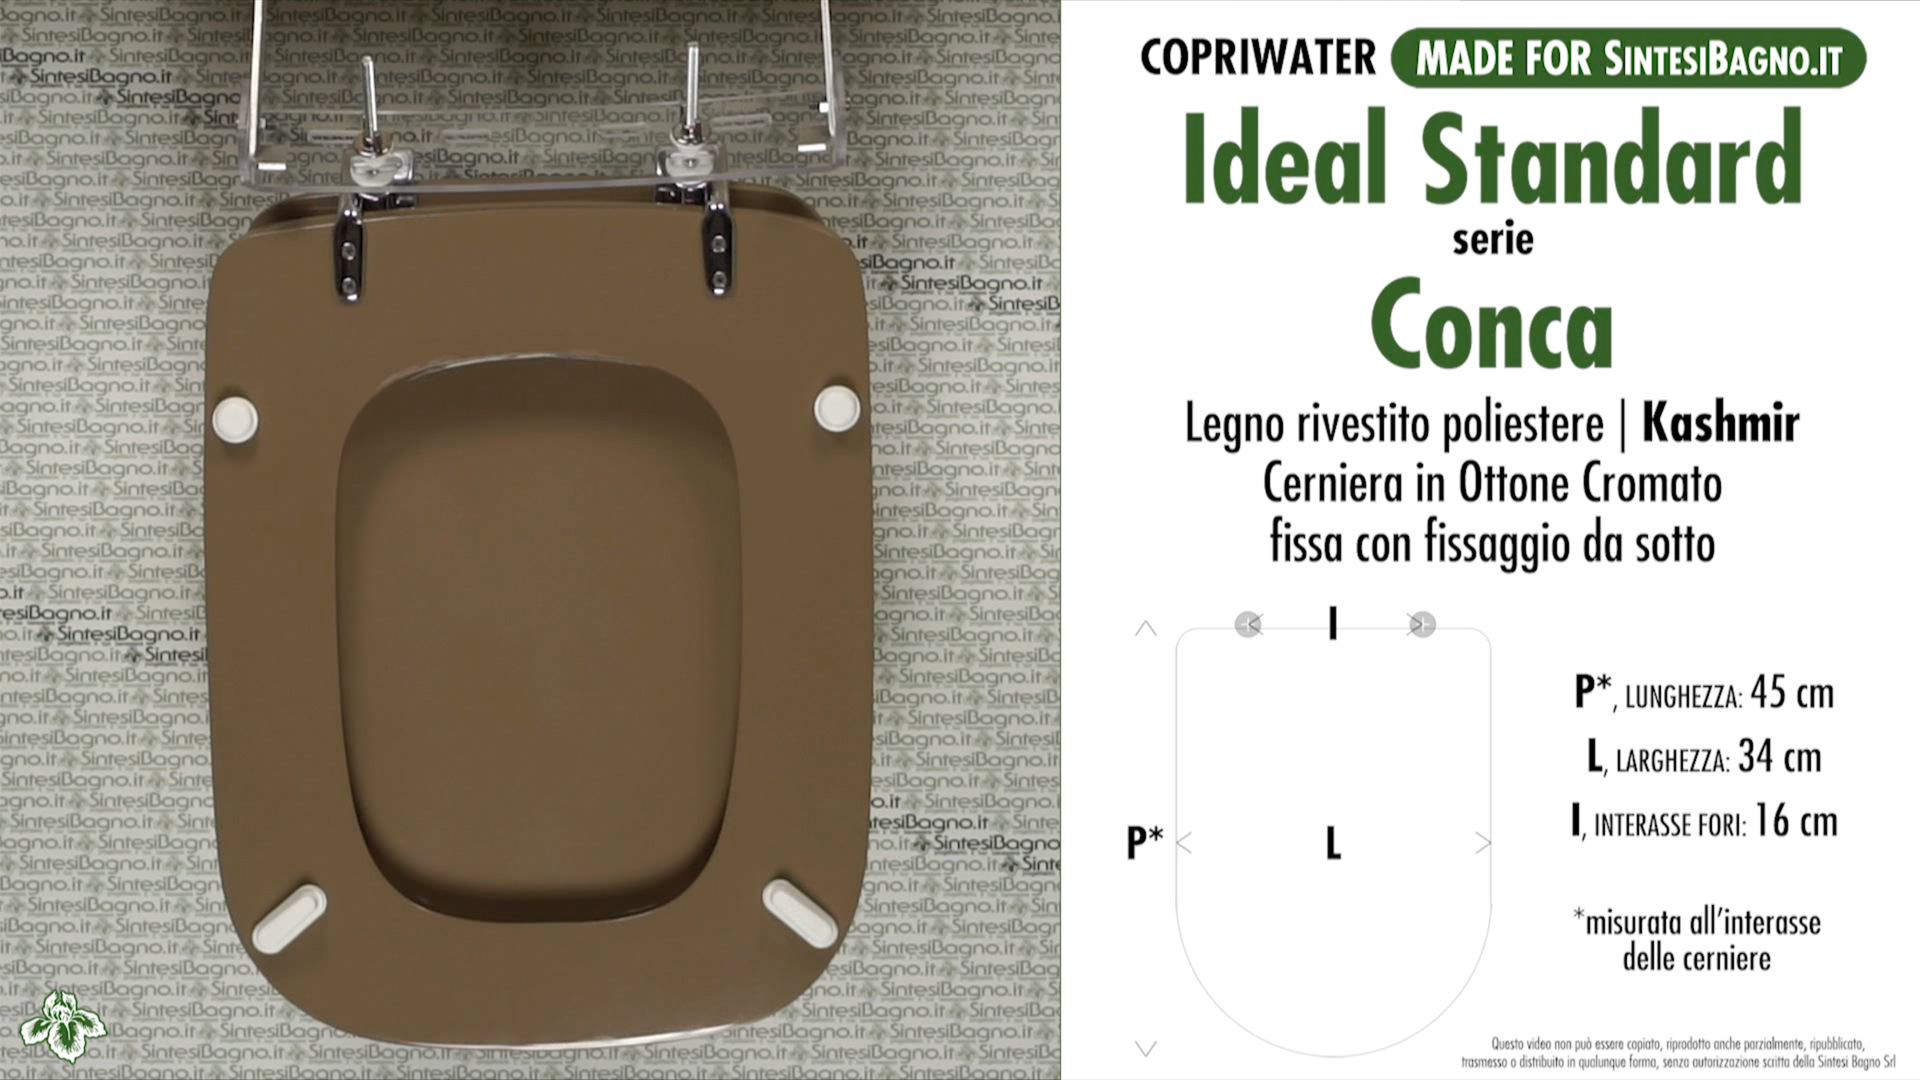 Conca colore kashmir catalogo ricambi copriwater ideal for Copriwater ideal standard tesi